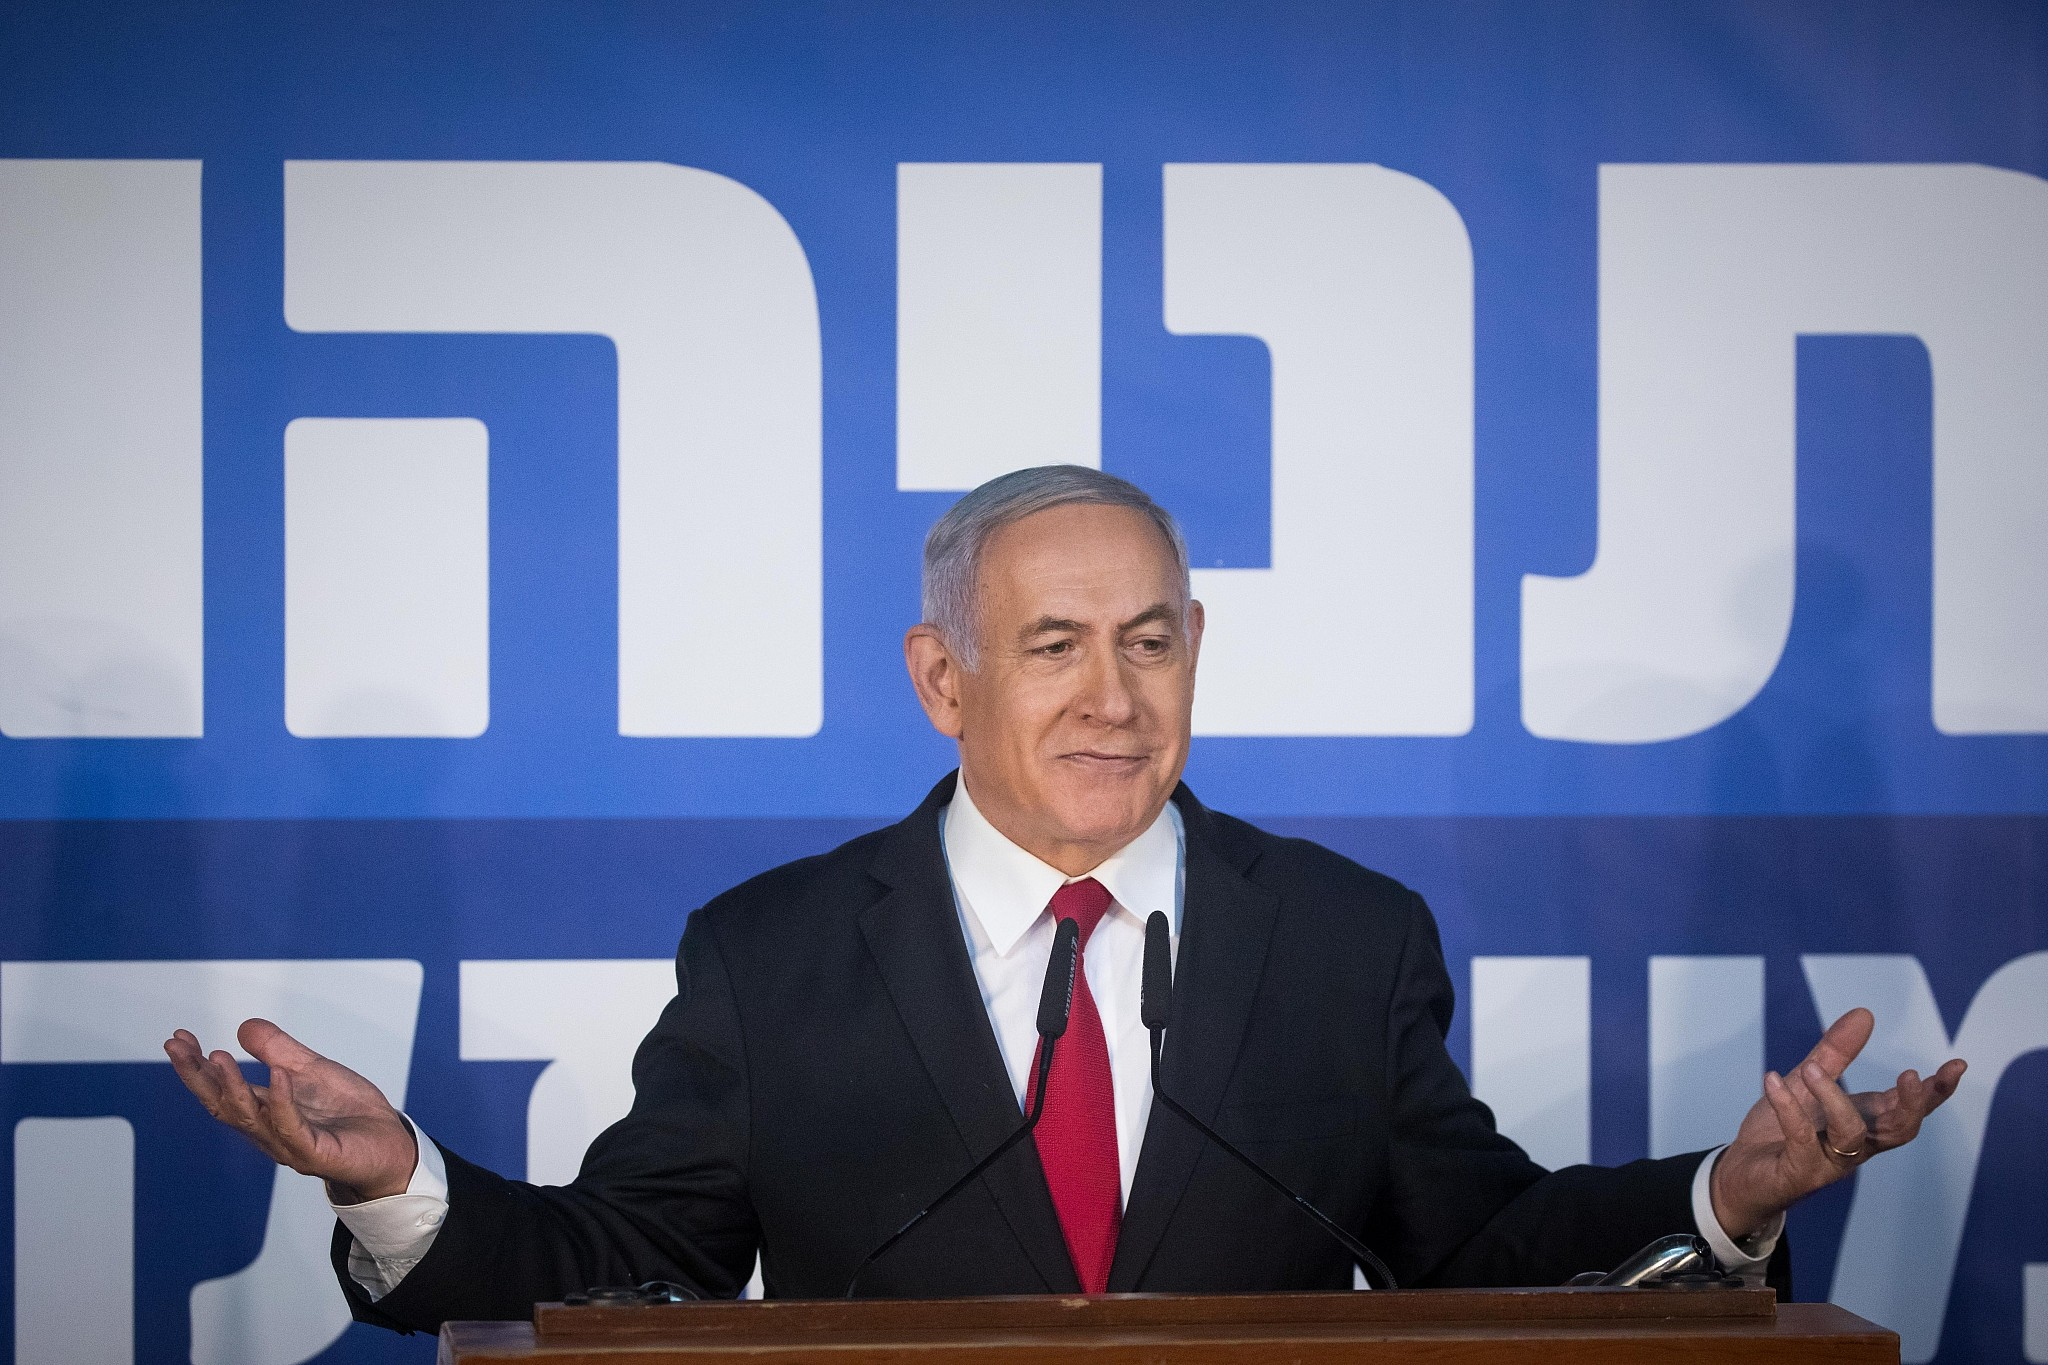 With Netanyahu indictment cast, what happens now? Not much (pending